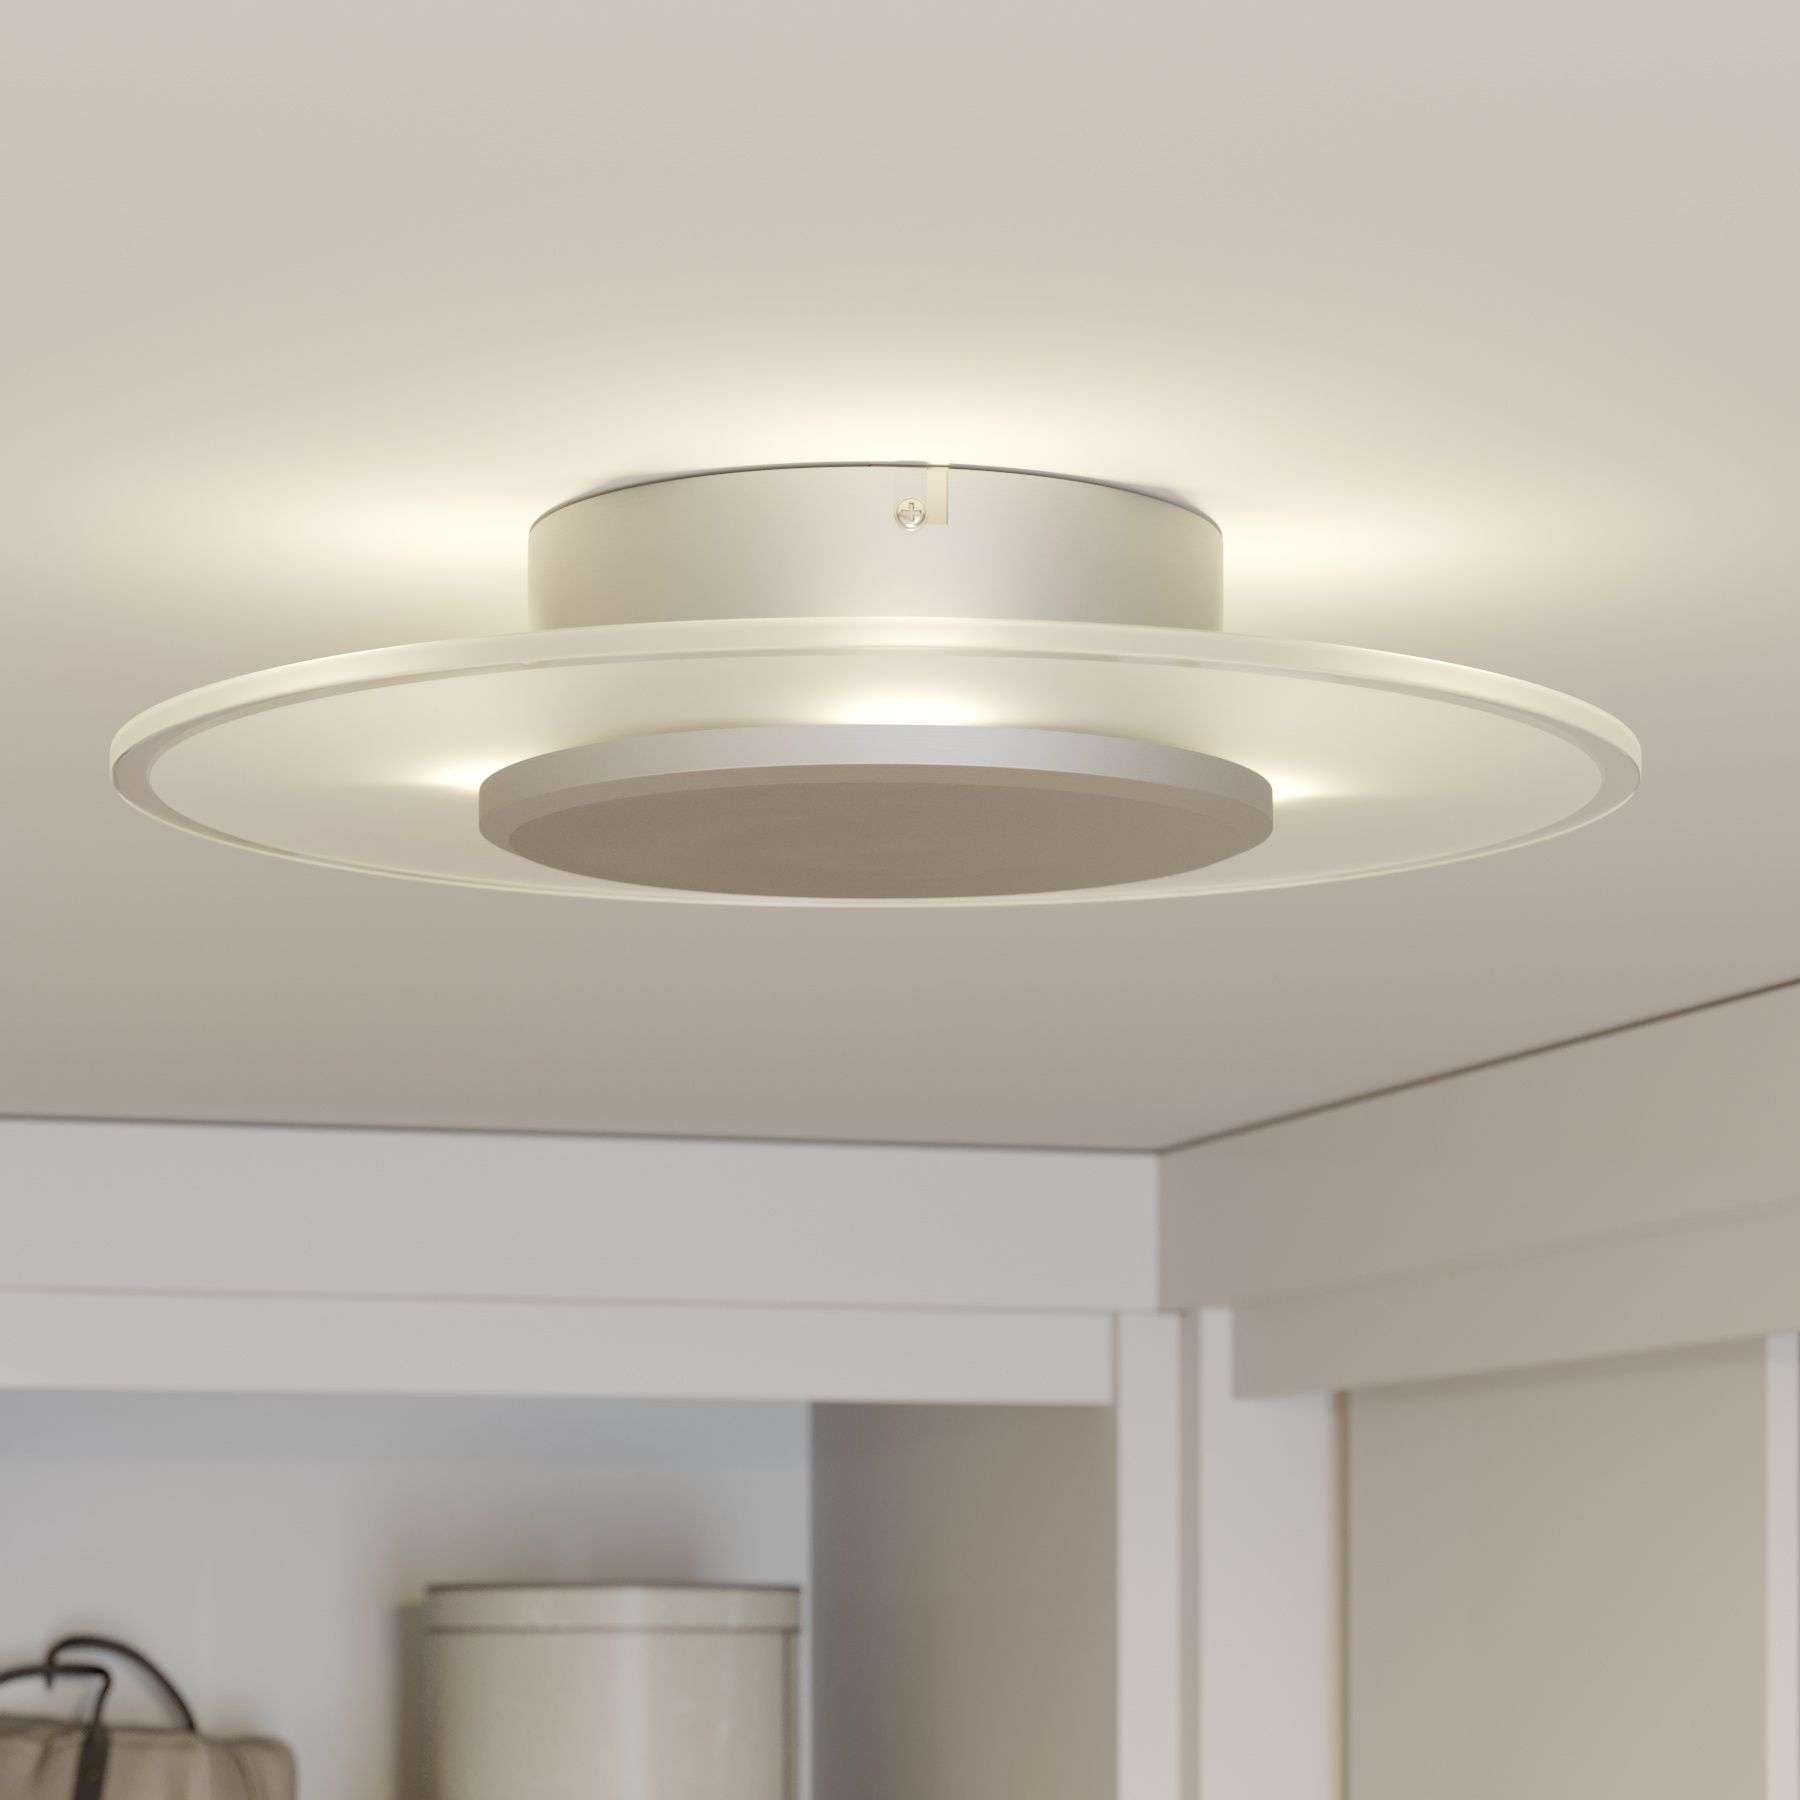 Dora led ceiling light dimmable lights dora led ceiling light dimmable aloadofball Images